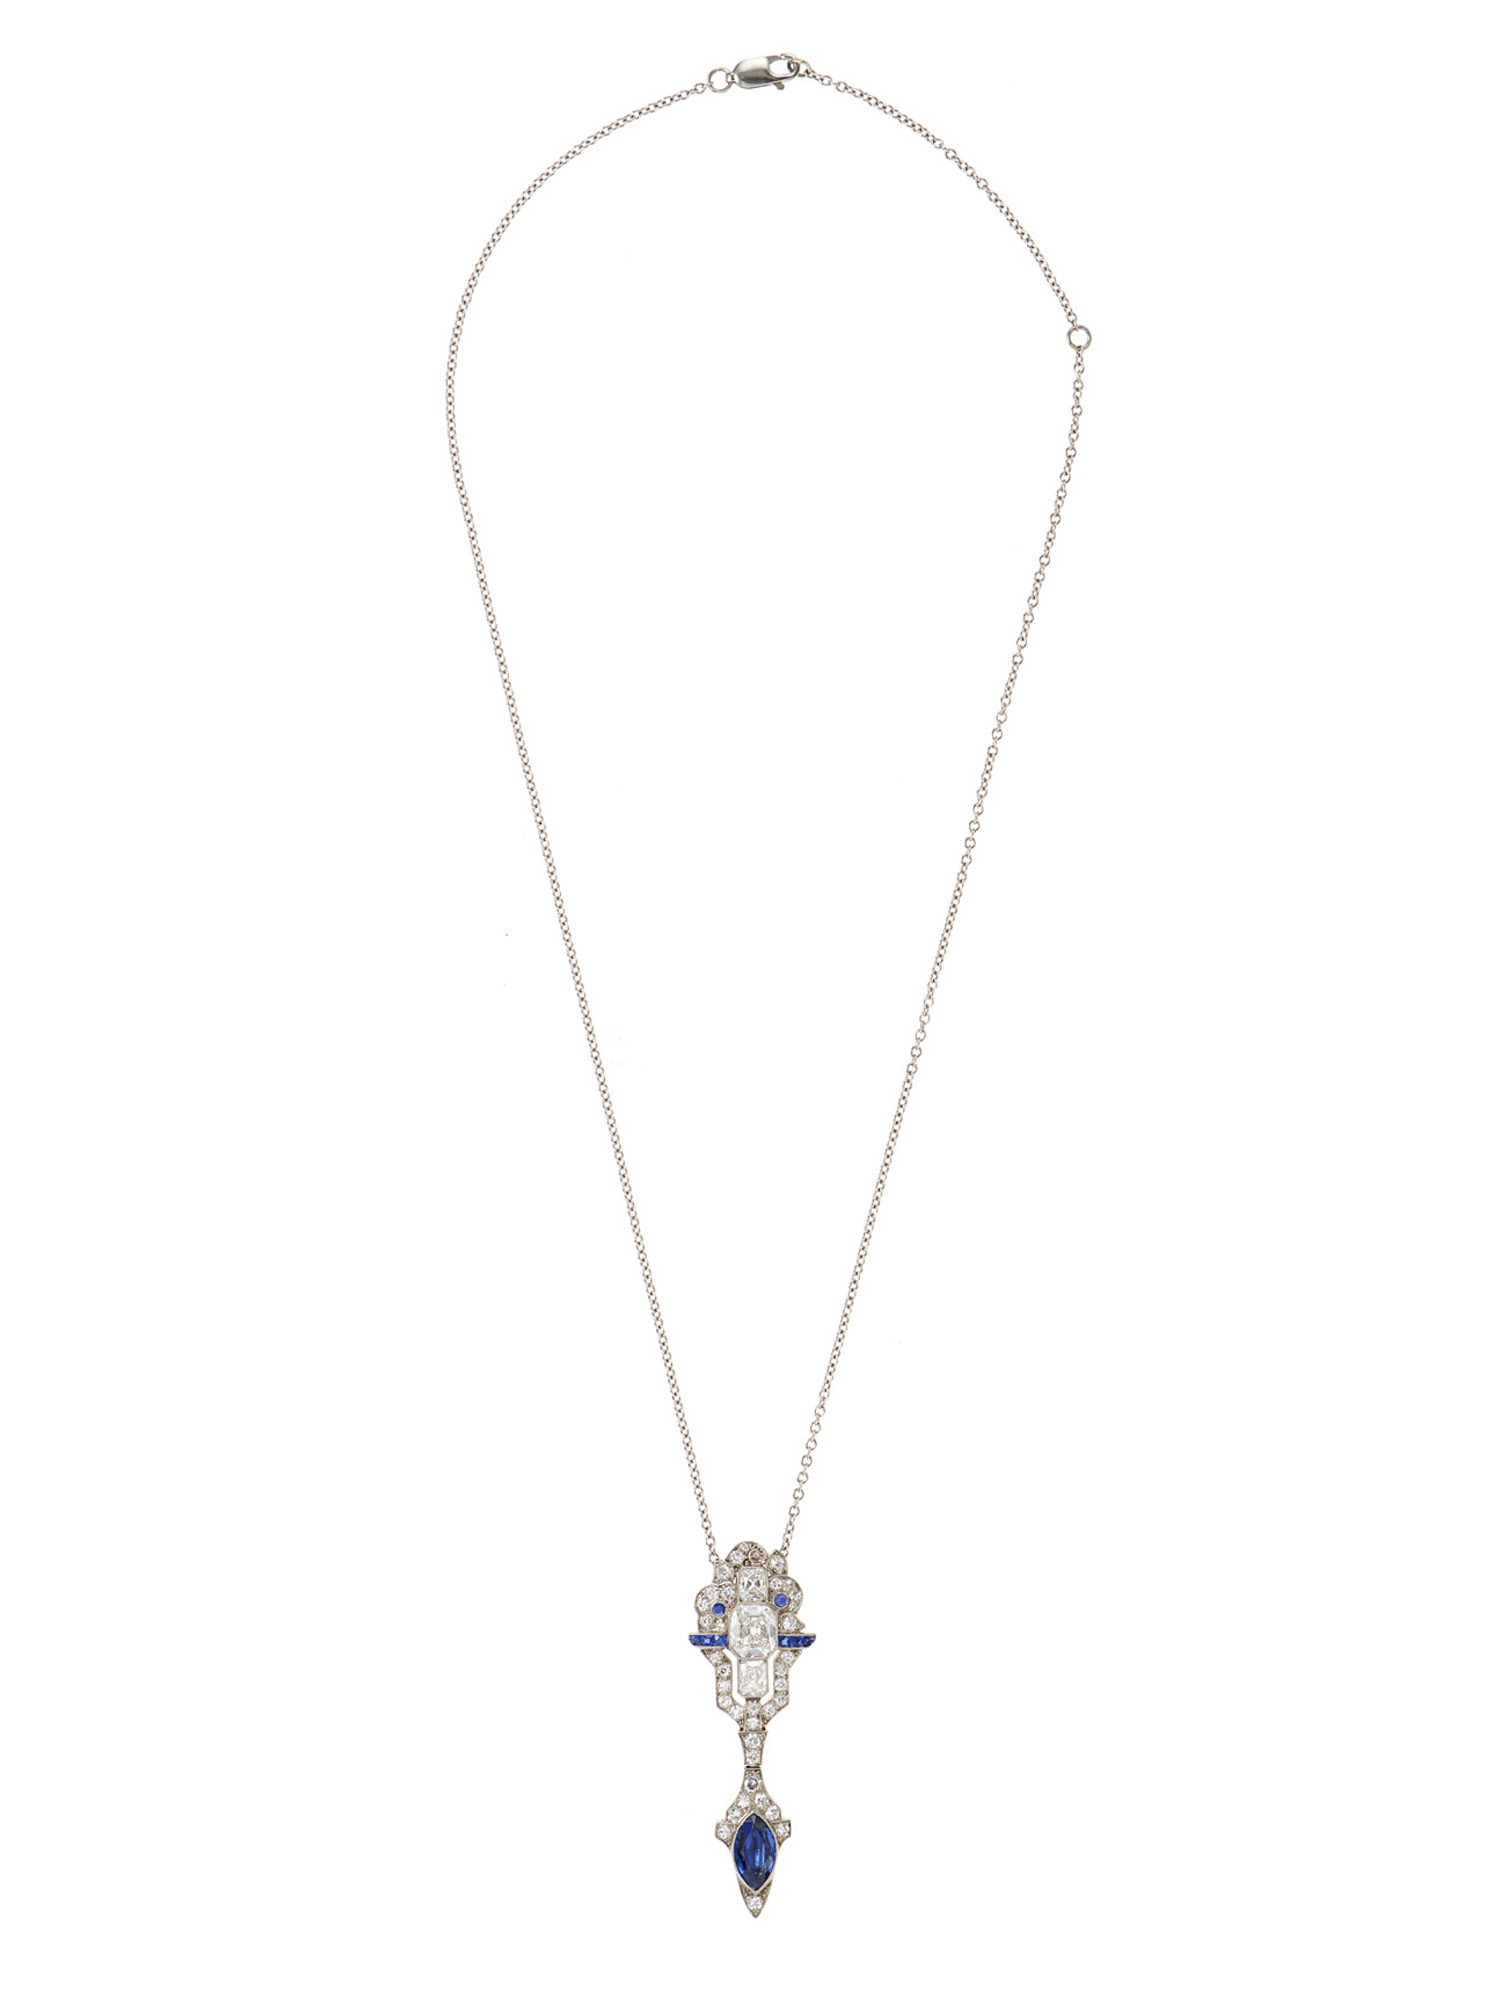 bespoke master diamonds classics high de aura beers cushion cut pendant jewellery collection